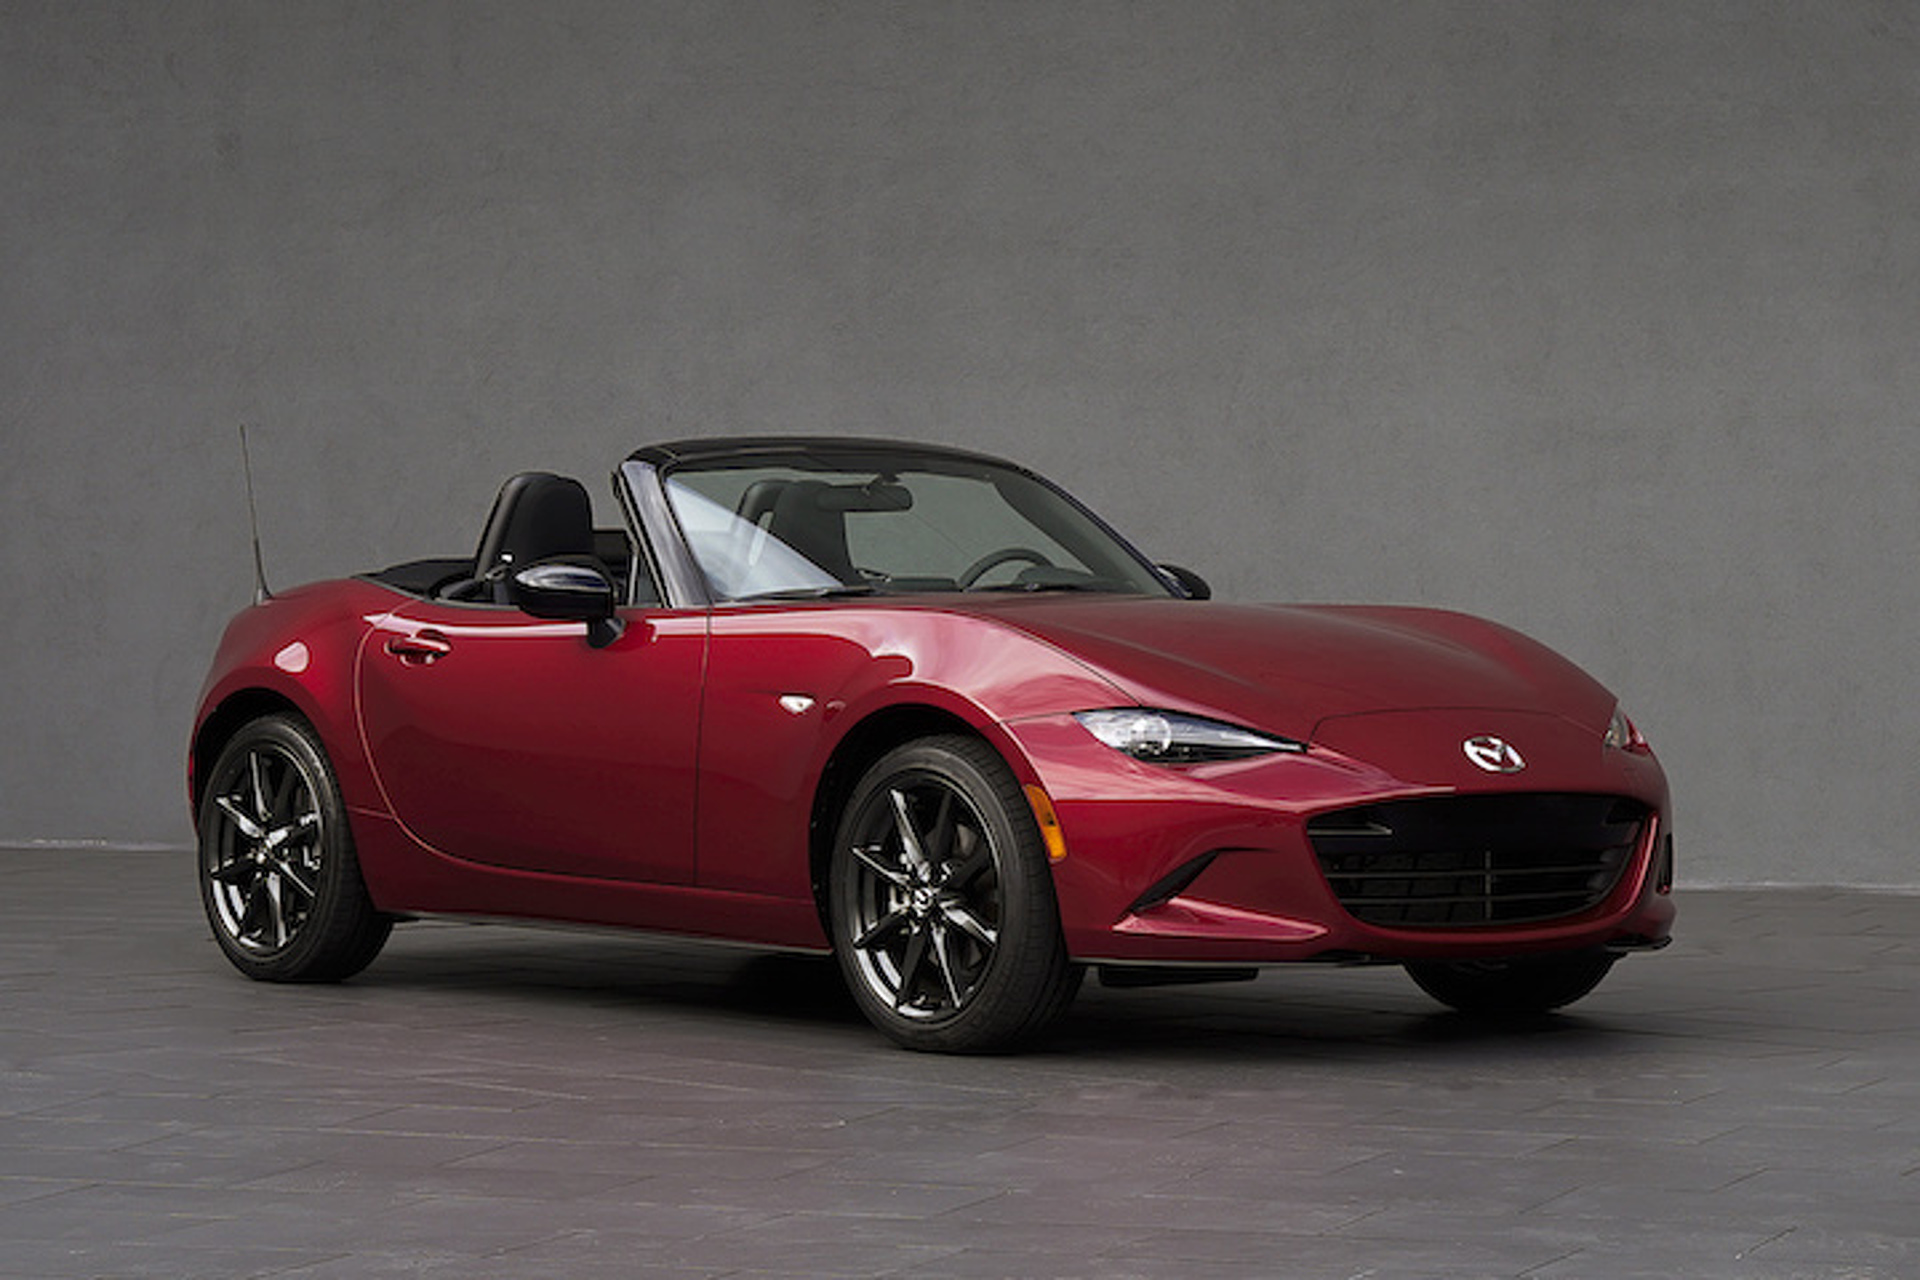 Mazda Won't Build a More Powerful MX-5, But That's Good News For Fiat